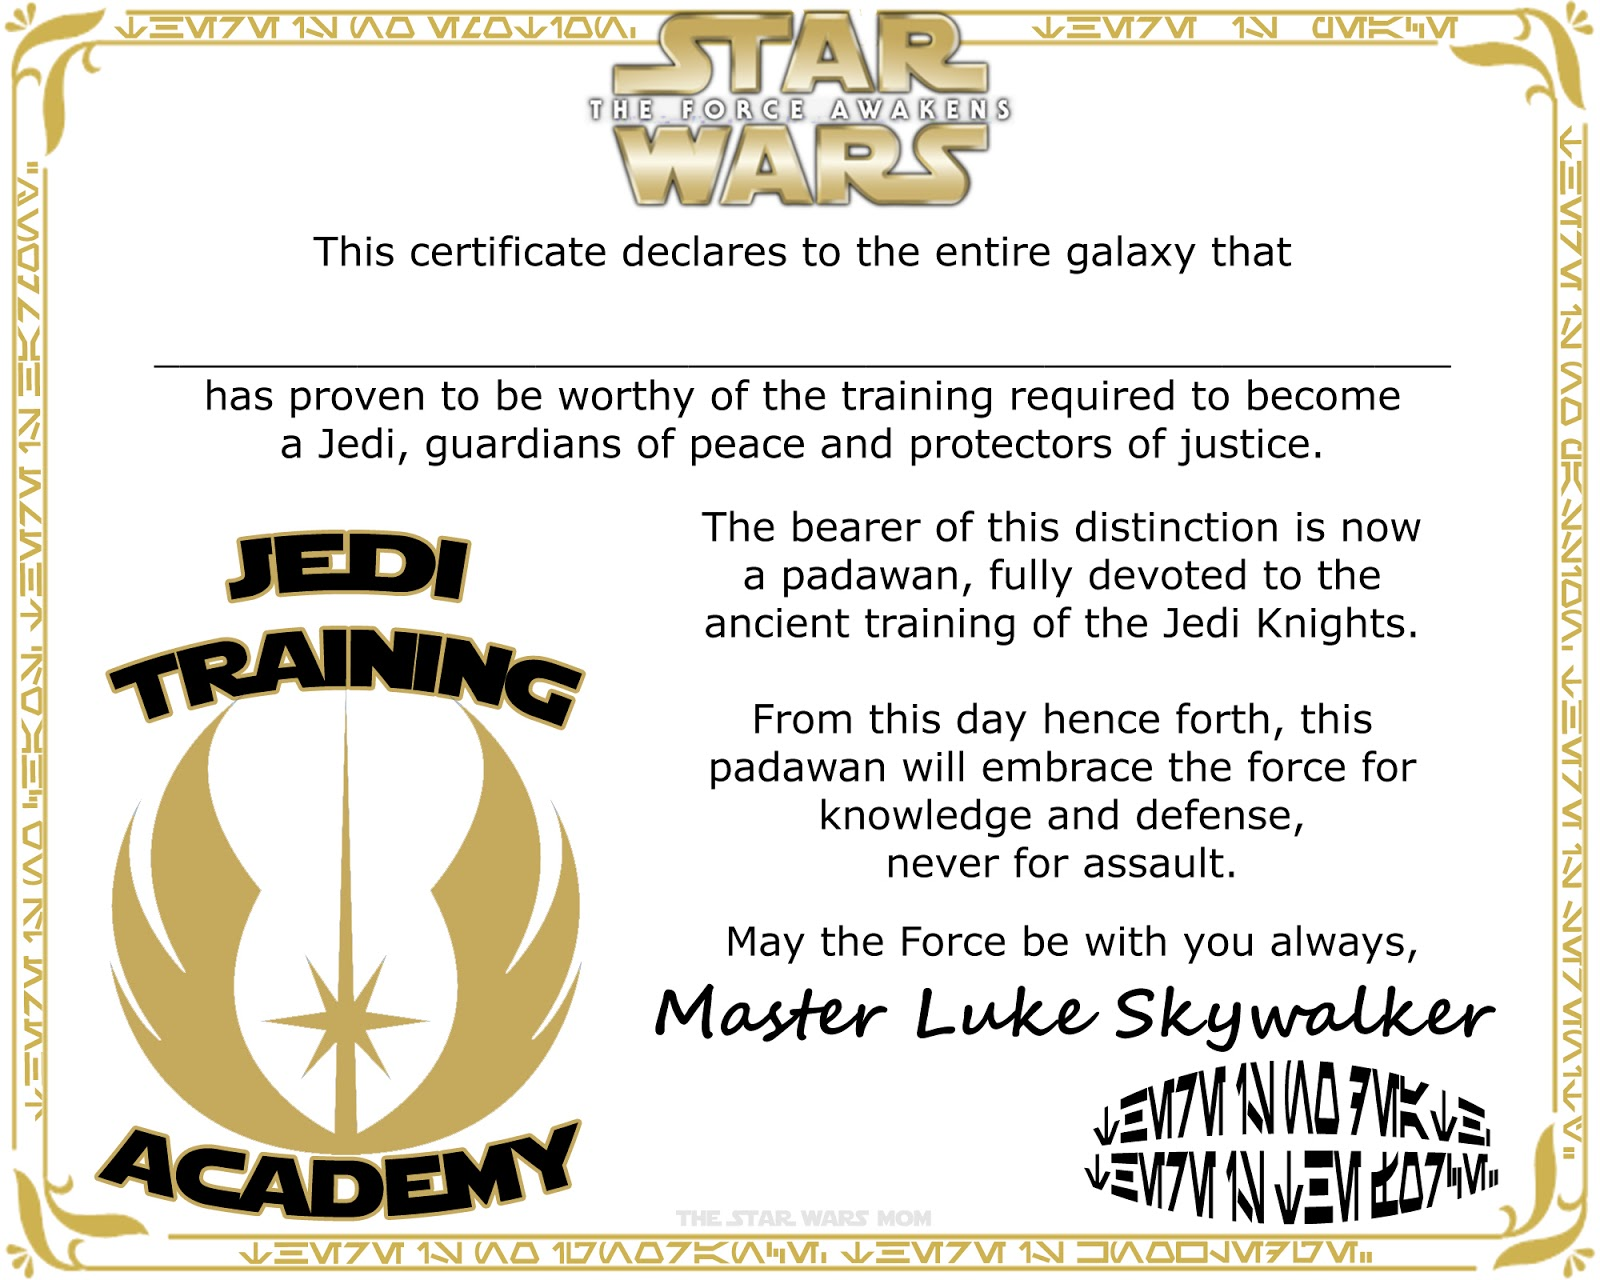 Star Wars Jedi Training Academy Certificate Free Printable (click On Image  To Print Or Download)  Certificates Free Download Free Printable